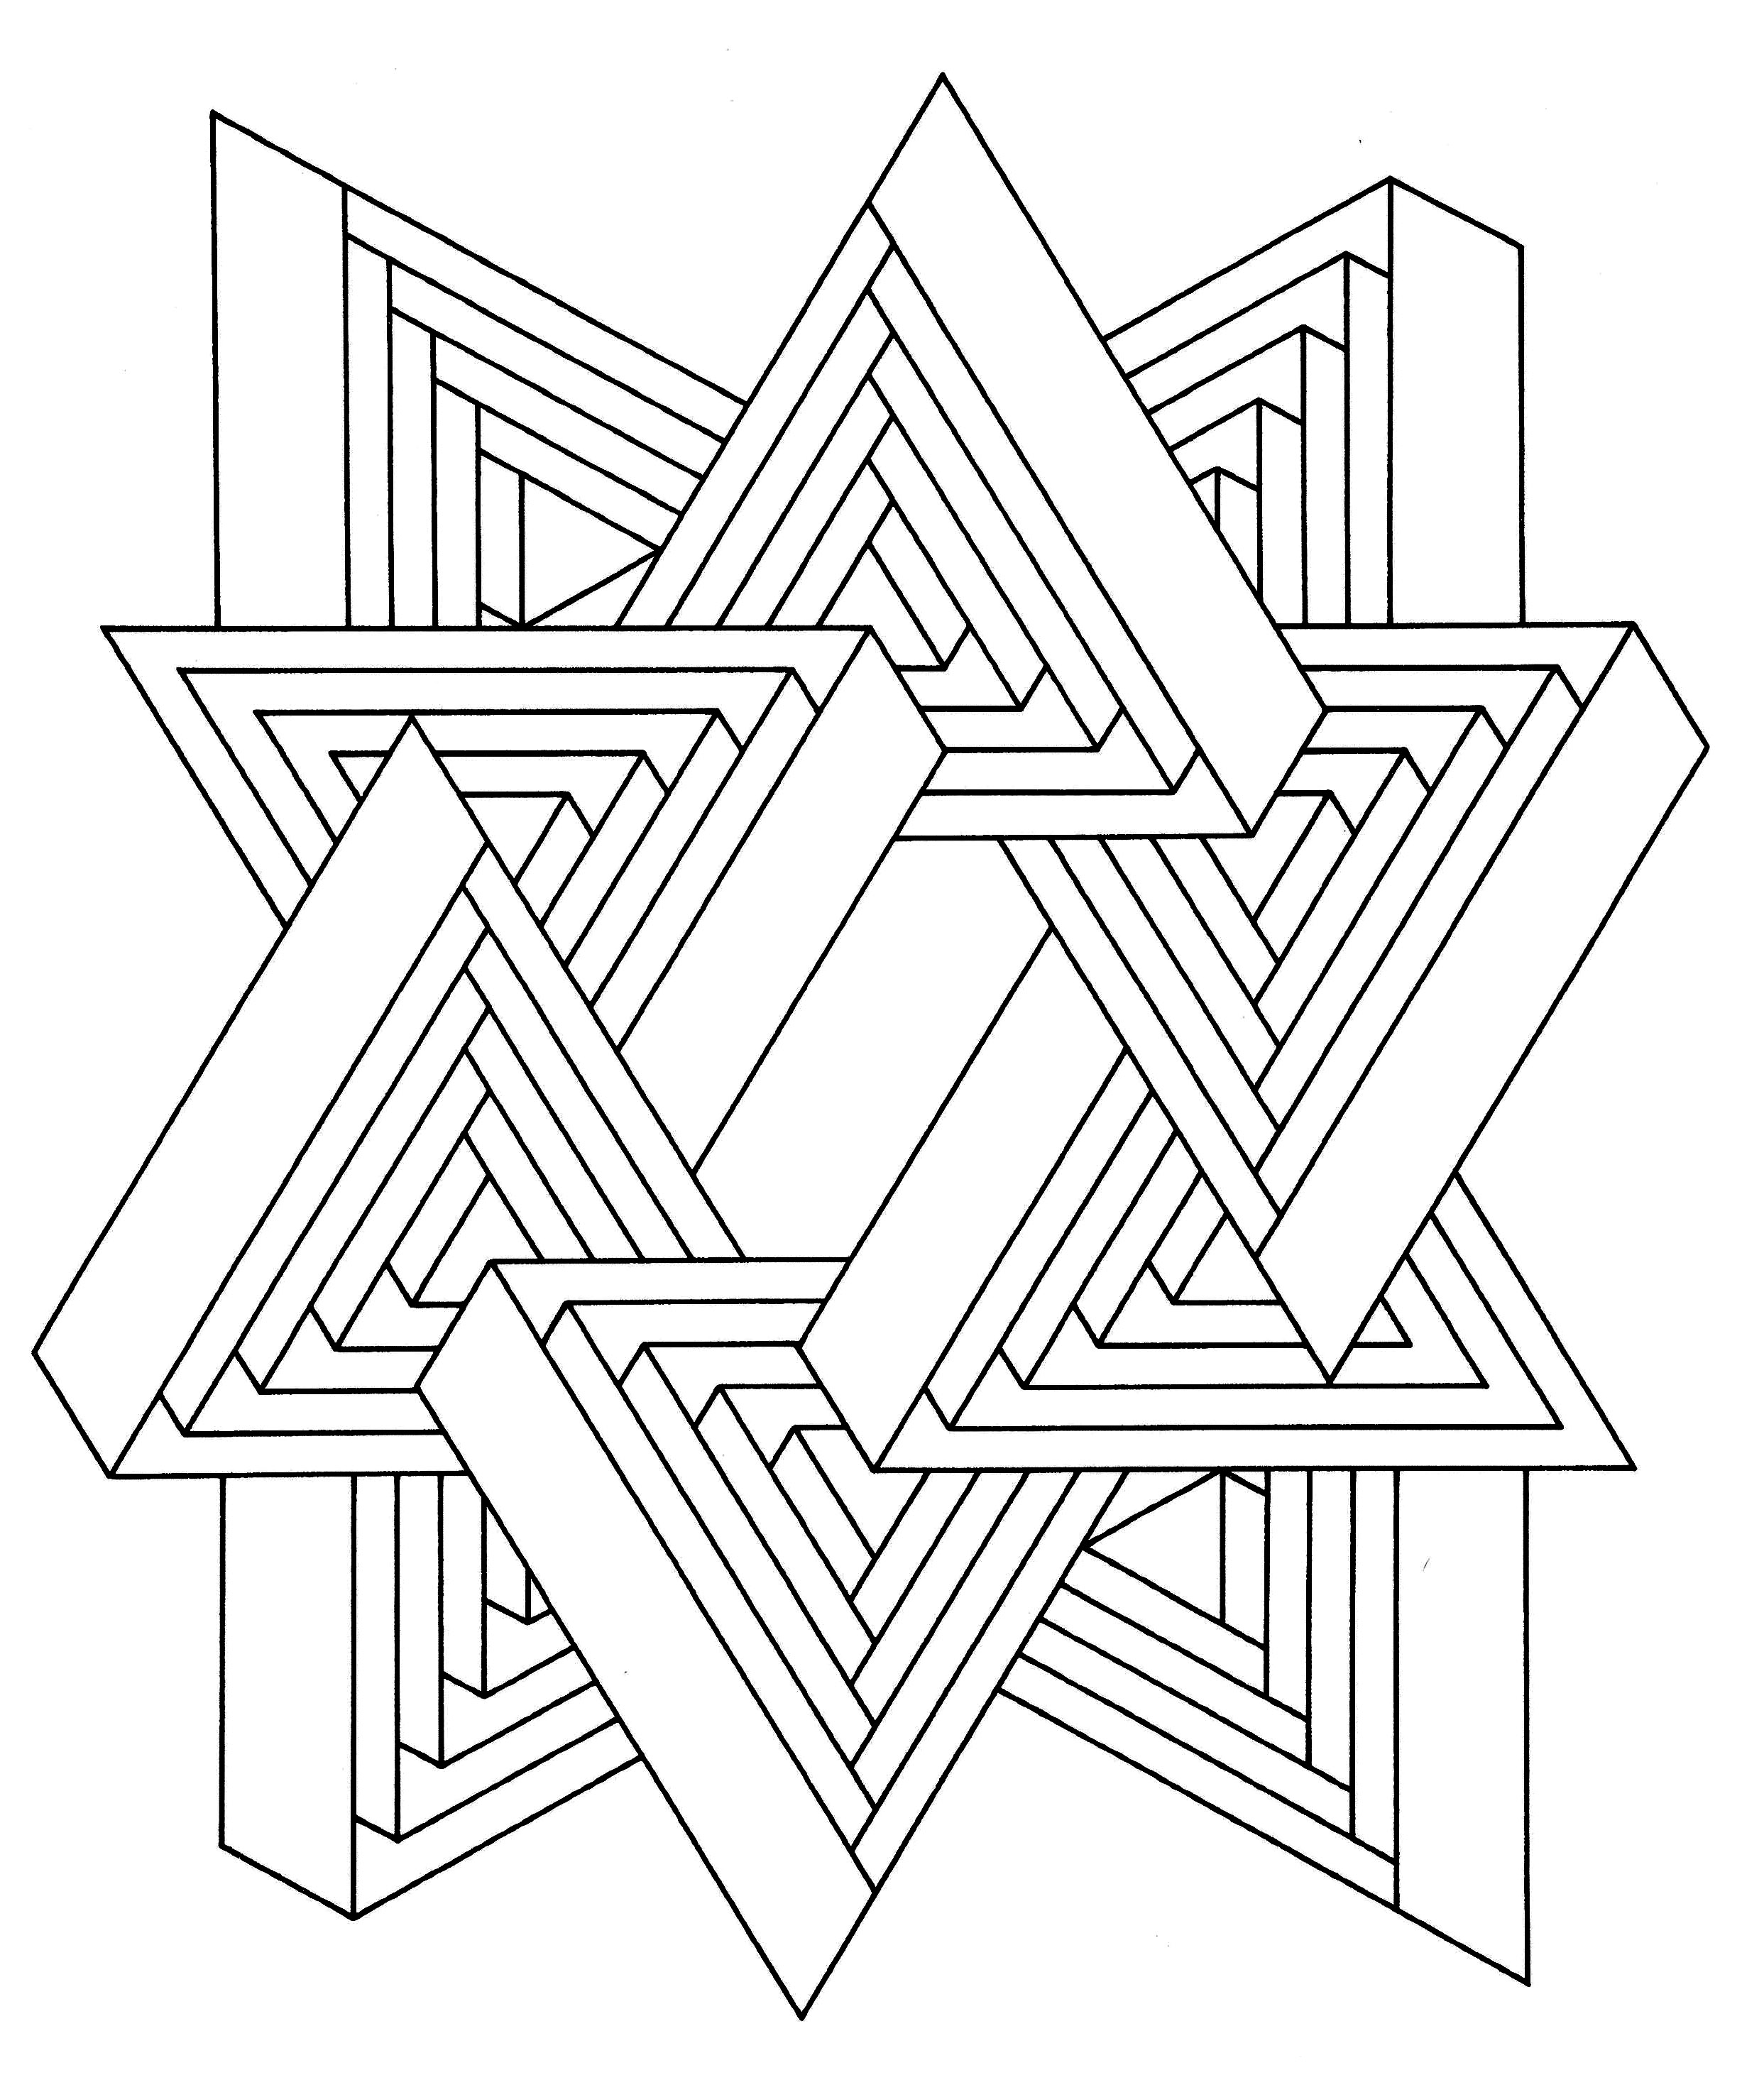 2485x2954 To Print This Free Coloring Page Op Art Jean Larcher Inside